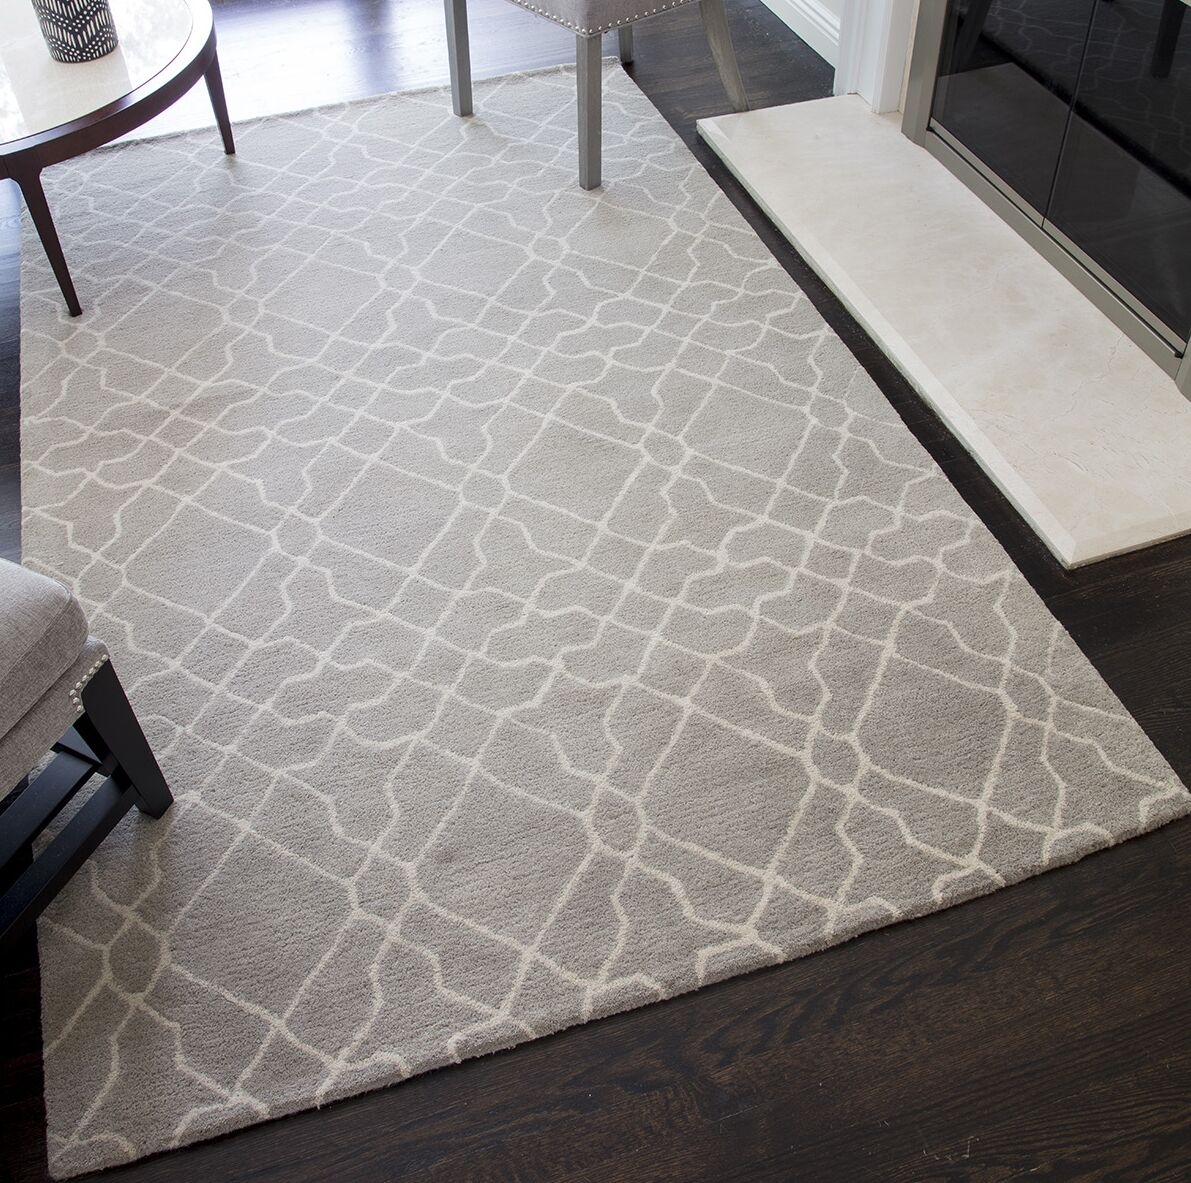 Pomeroy Geometric Hand-Tufted Wool Gray Area Rug Rug Size: 8' x 10'